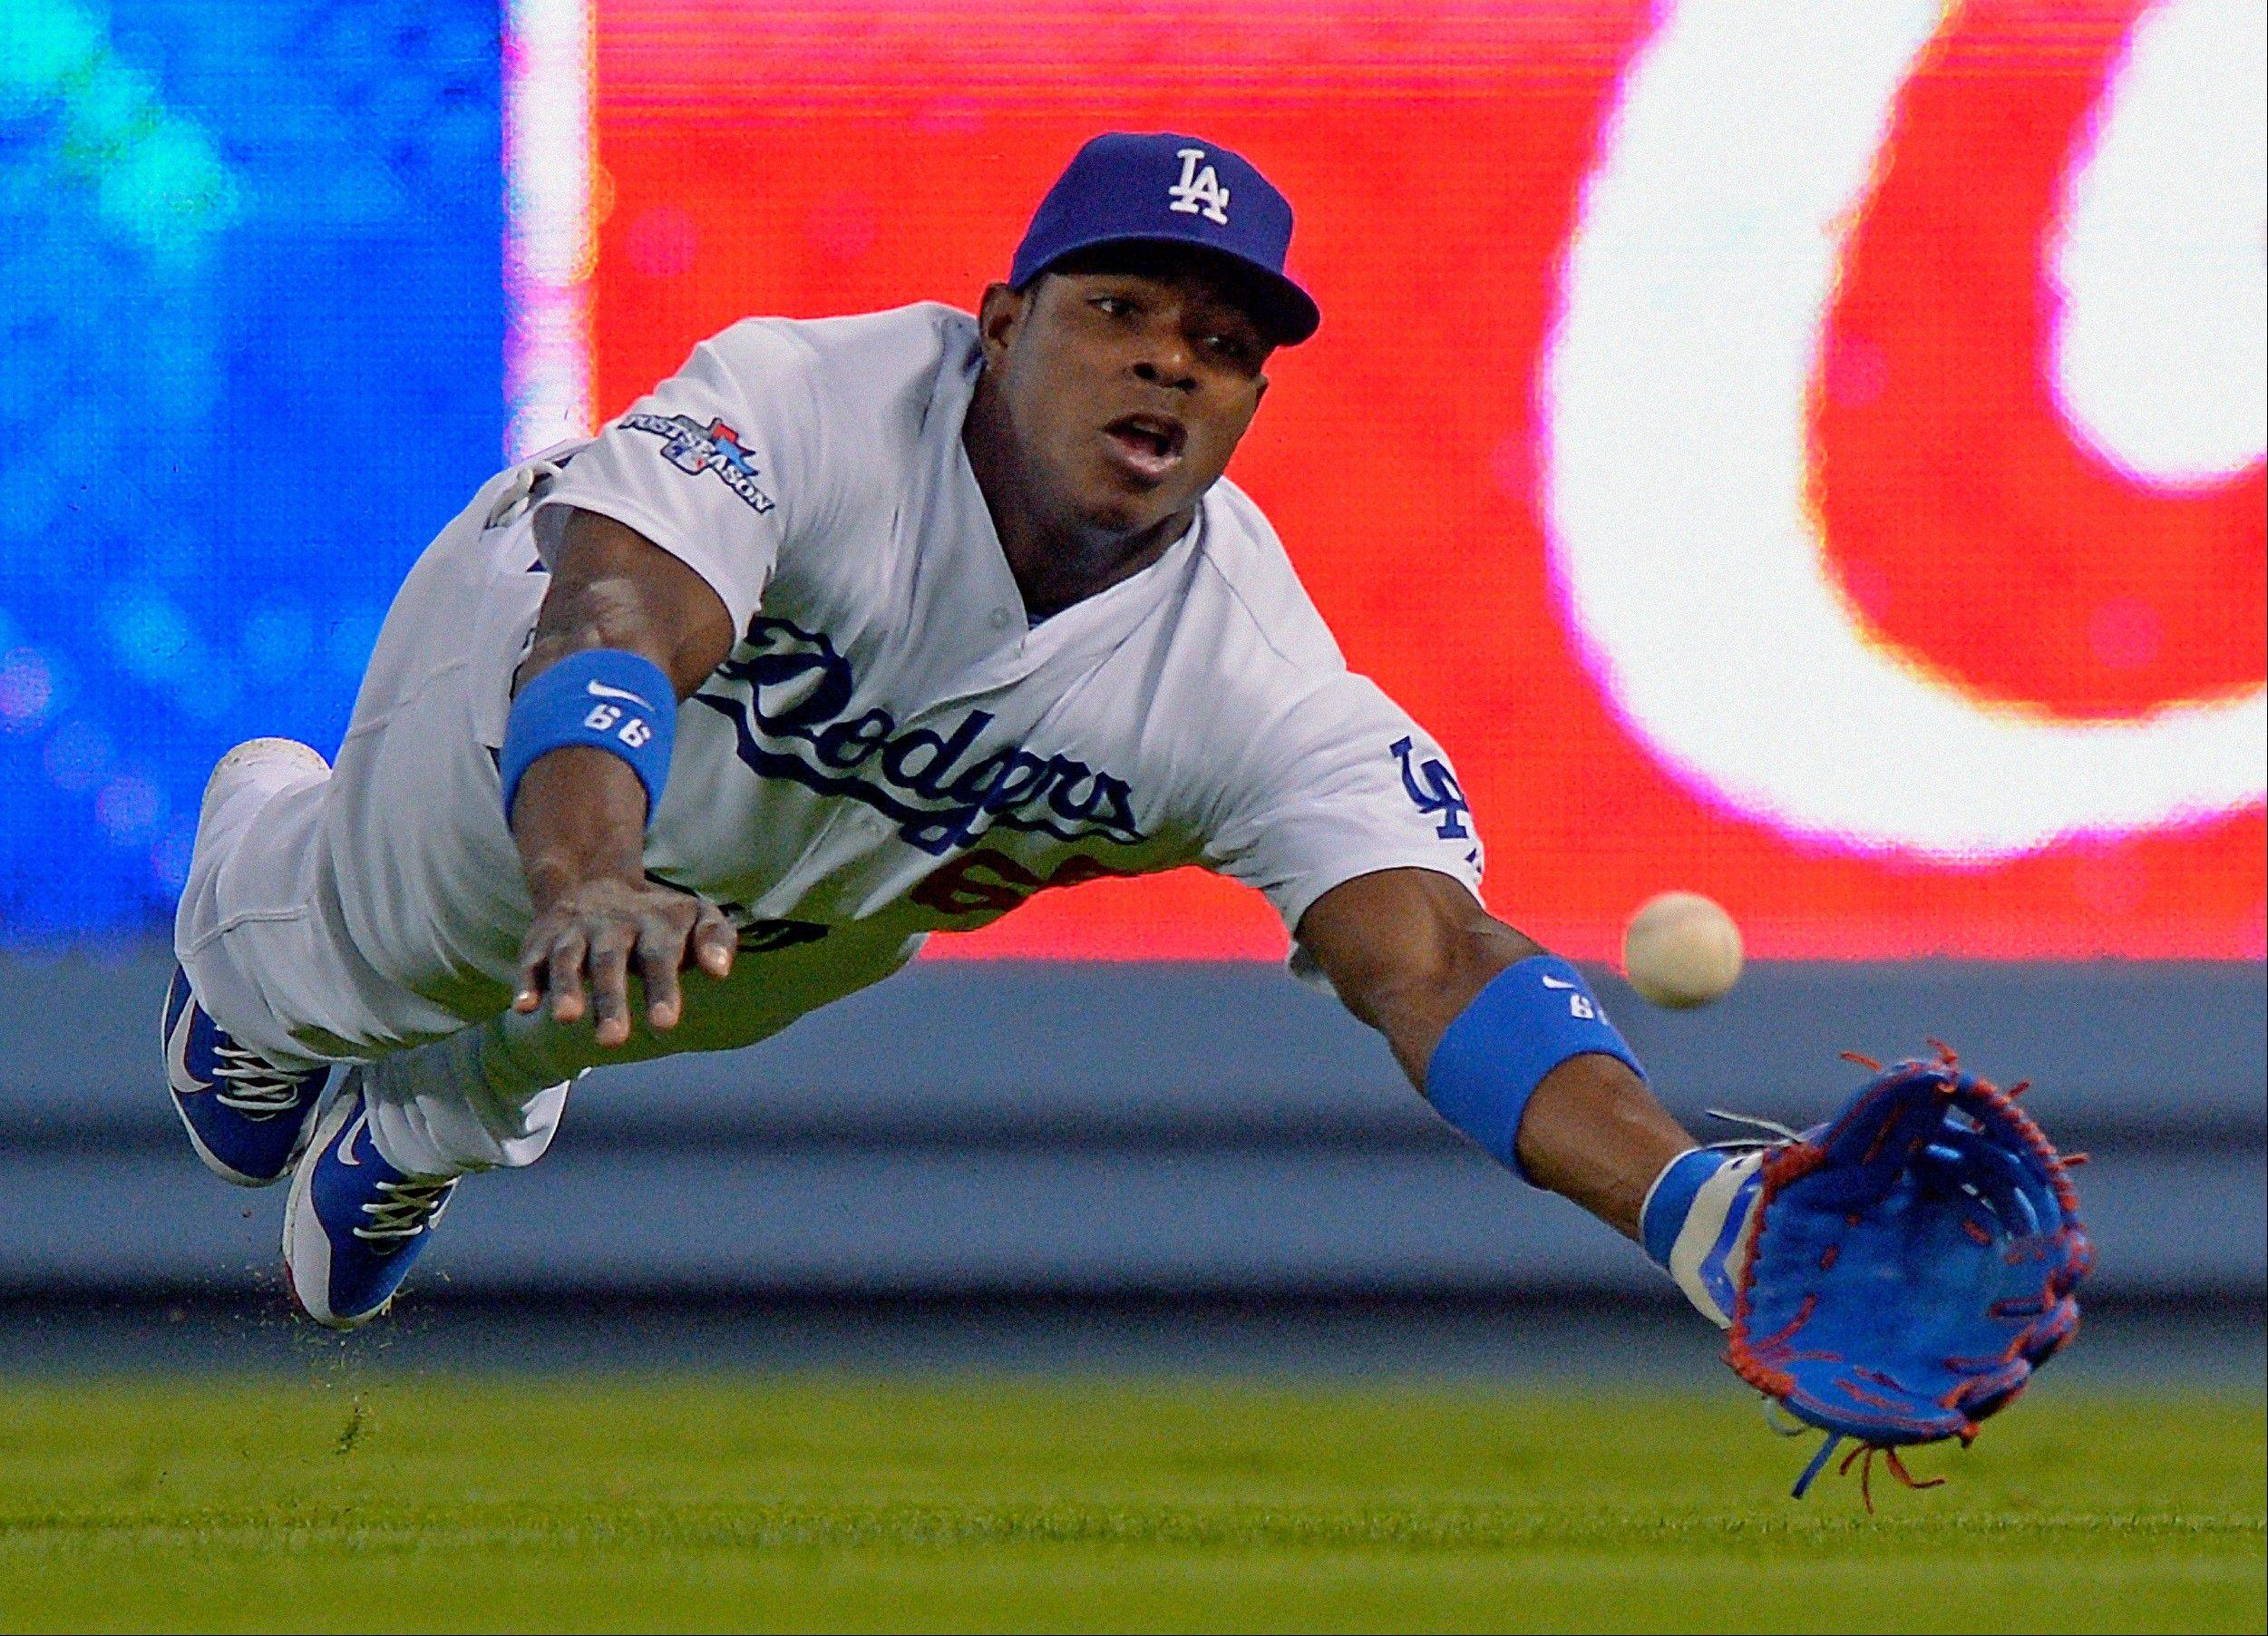 The Dodgers' Yasiel Puig dives for a ball hit by the Cardinals' David Freese during the fifth inning of Game 3 of the National League Championship Series on Monday in Los Angeles. The ball eluded Puig for a hit.